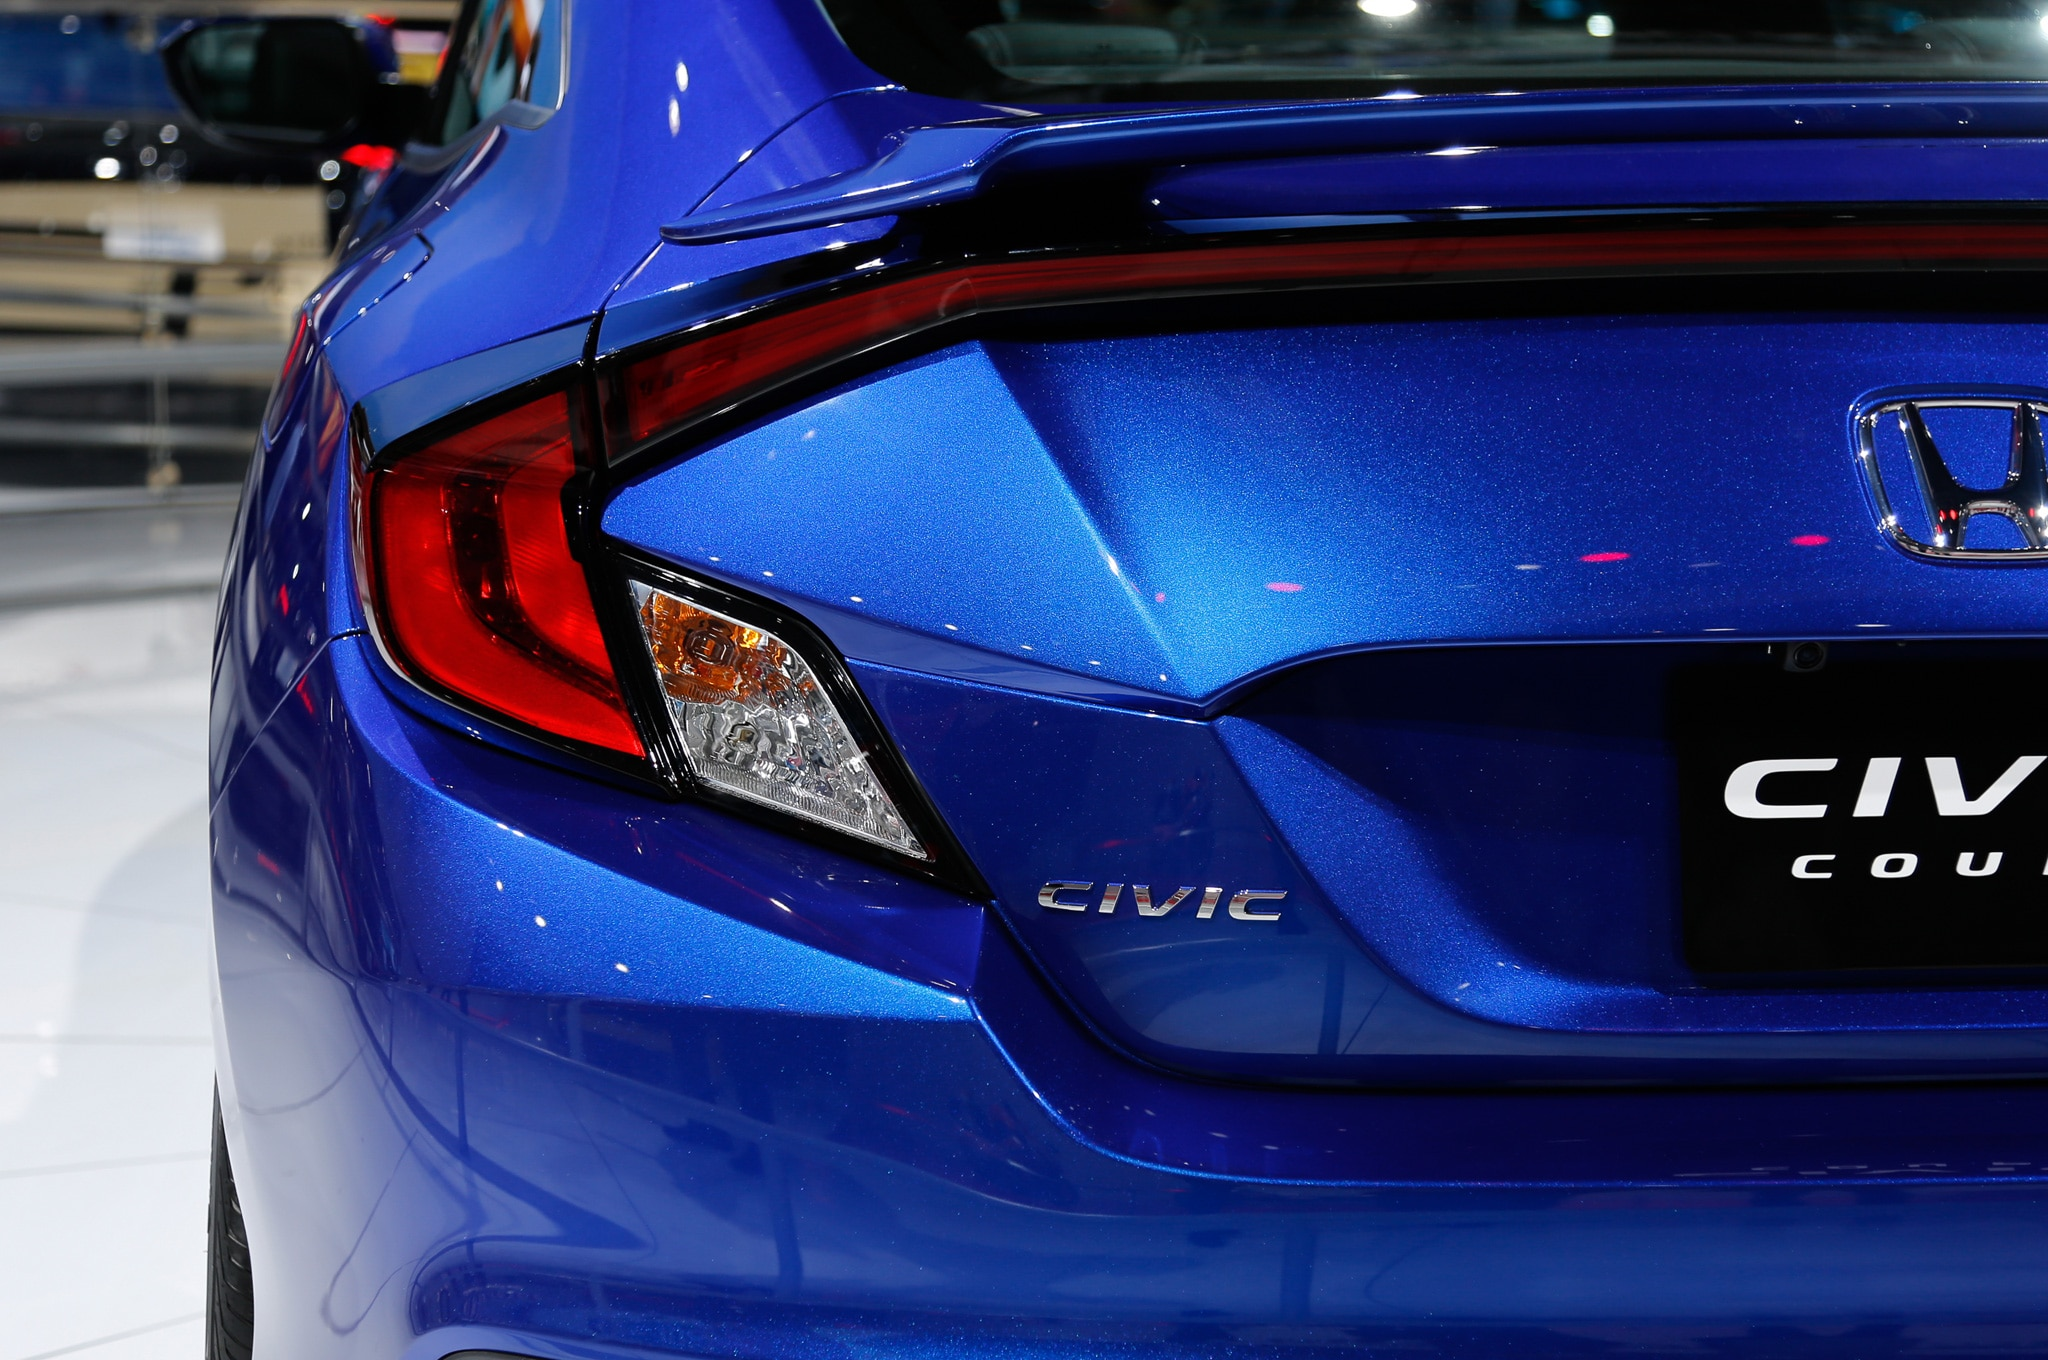 2016 honda civic coupe debuts with sportier styling - 2015 honda civic si interior lights ...